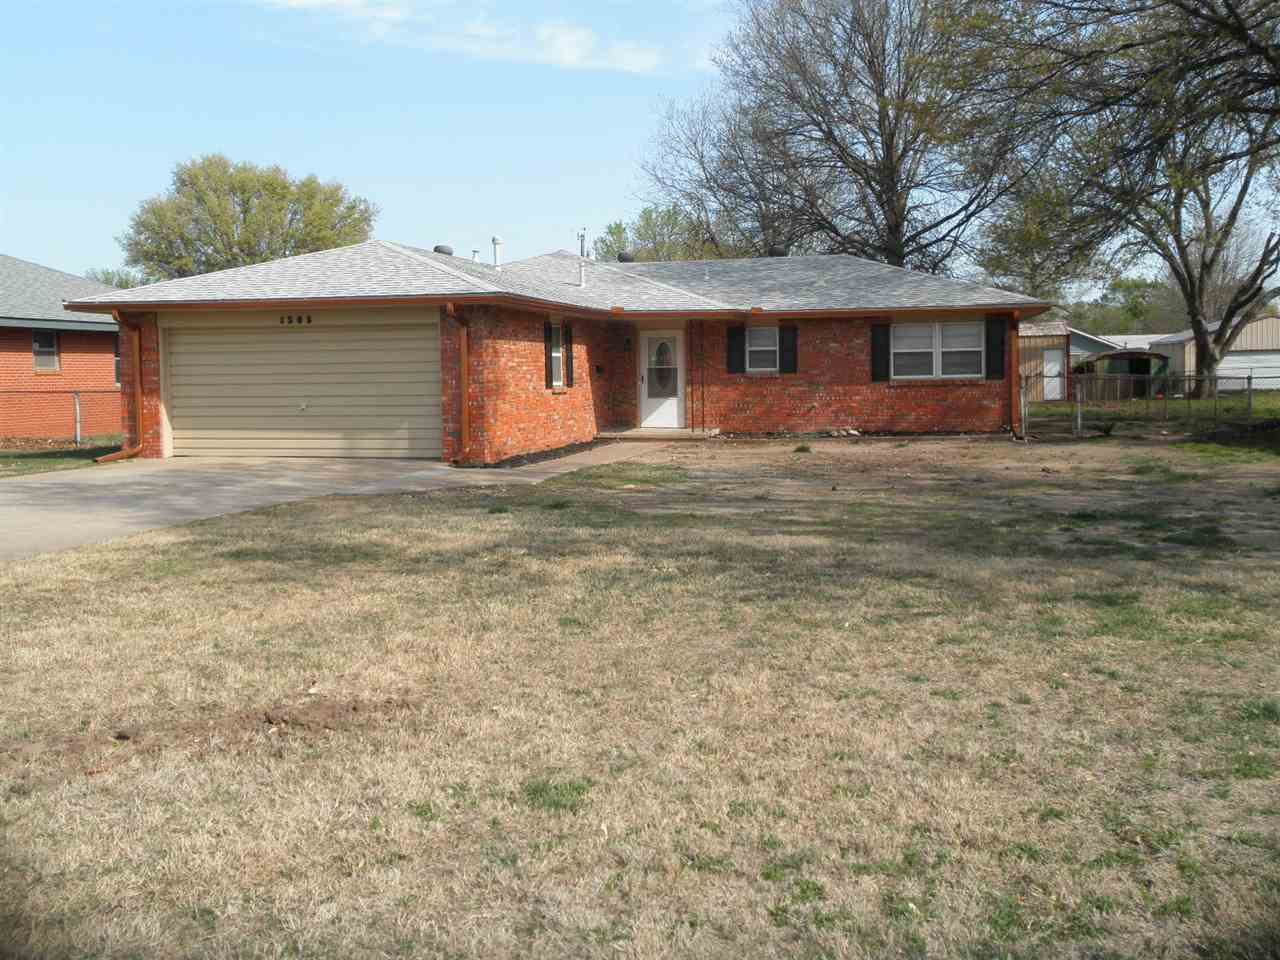 Sold Cross Sale W/ MLS | 1505 Donald  Ponca City, OK 74604 0